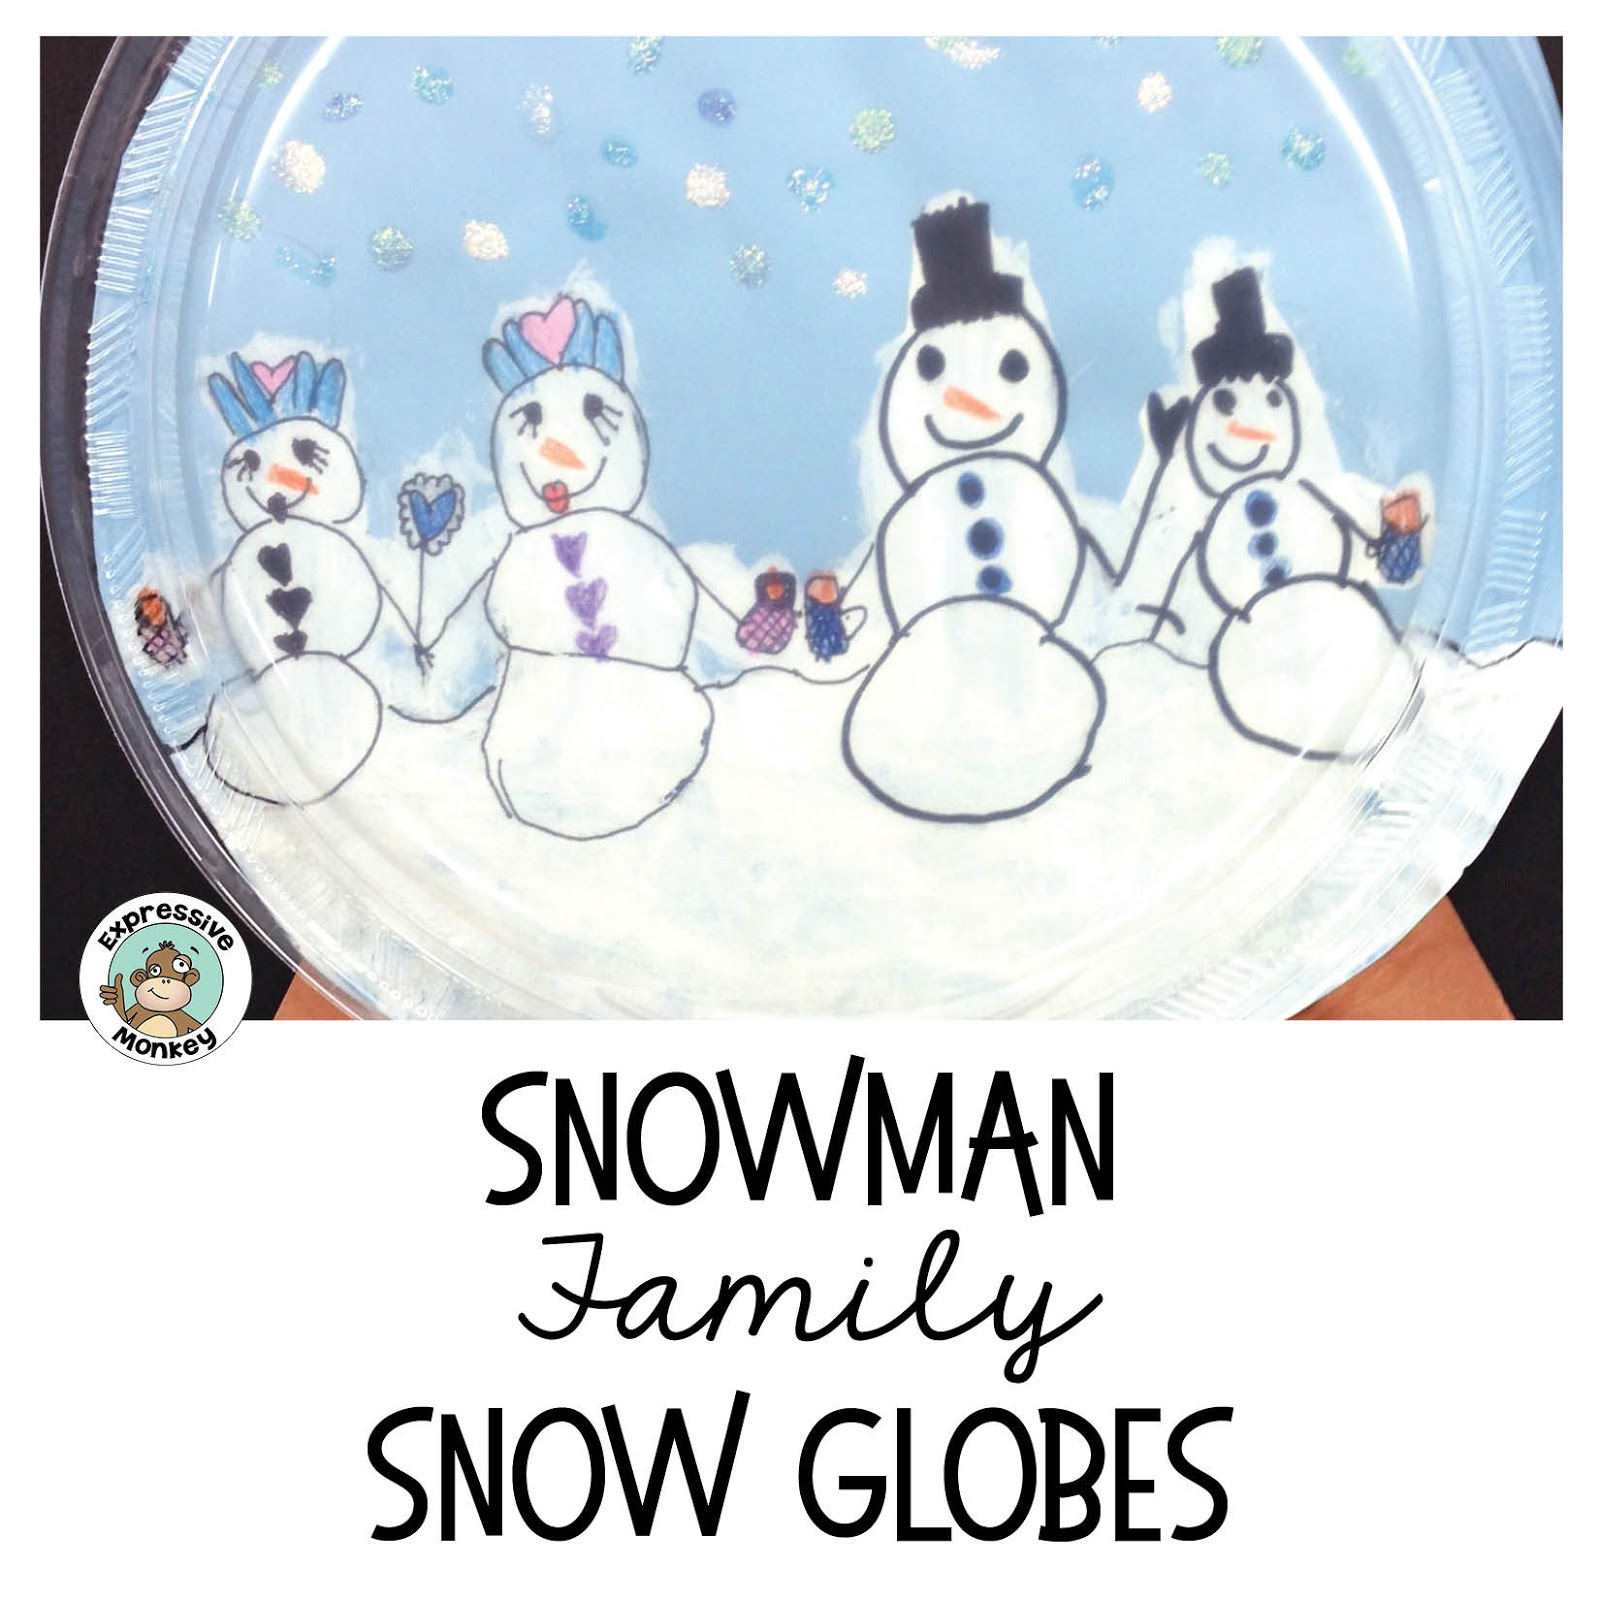 See How To Make This Snowman Family Snow Globe This Winter Craft Project Writing